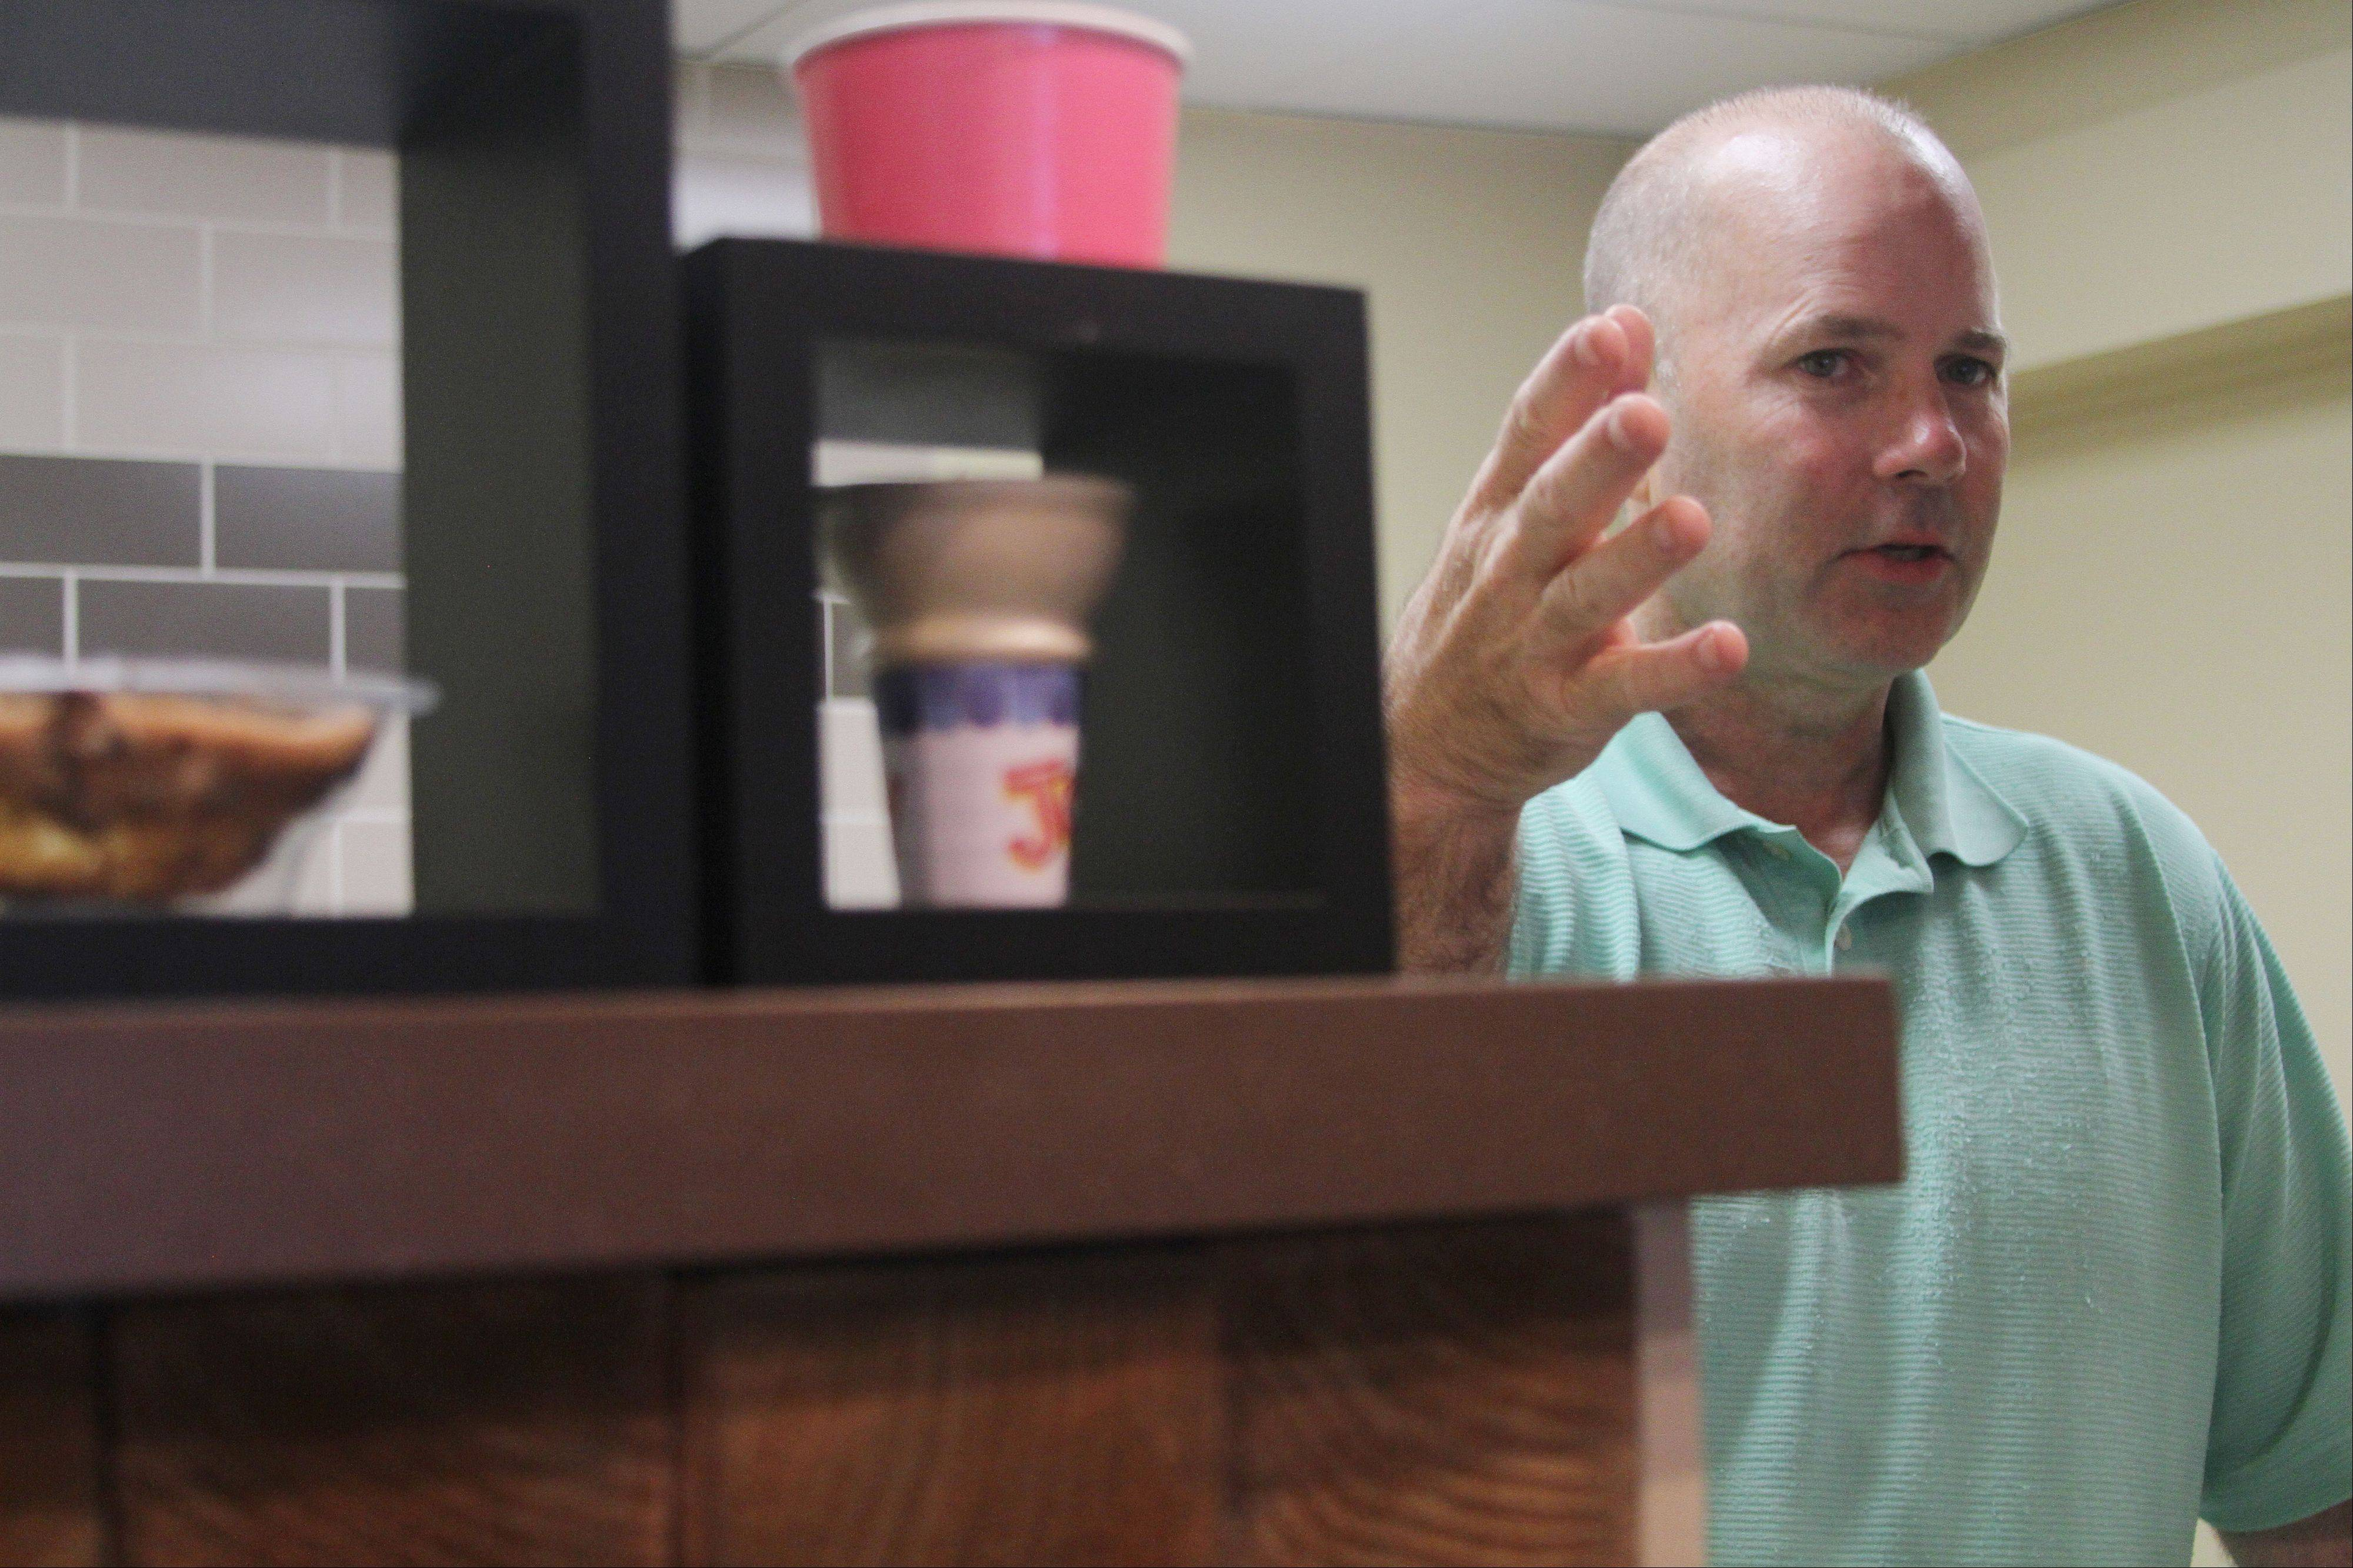 Michael Prince, owner of B Happy Cafe at 206 S. Washington St. in downtown Naperville, explains the process of his self-serve frozen yogurt shop to new customers. Unlike other frozen yogurt shops that weigh the cups, B Happy Cafe has a set price for each size.